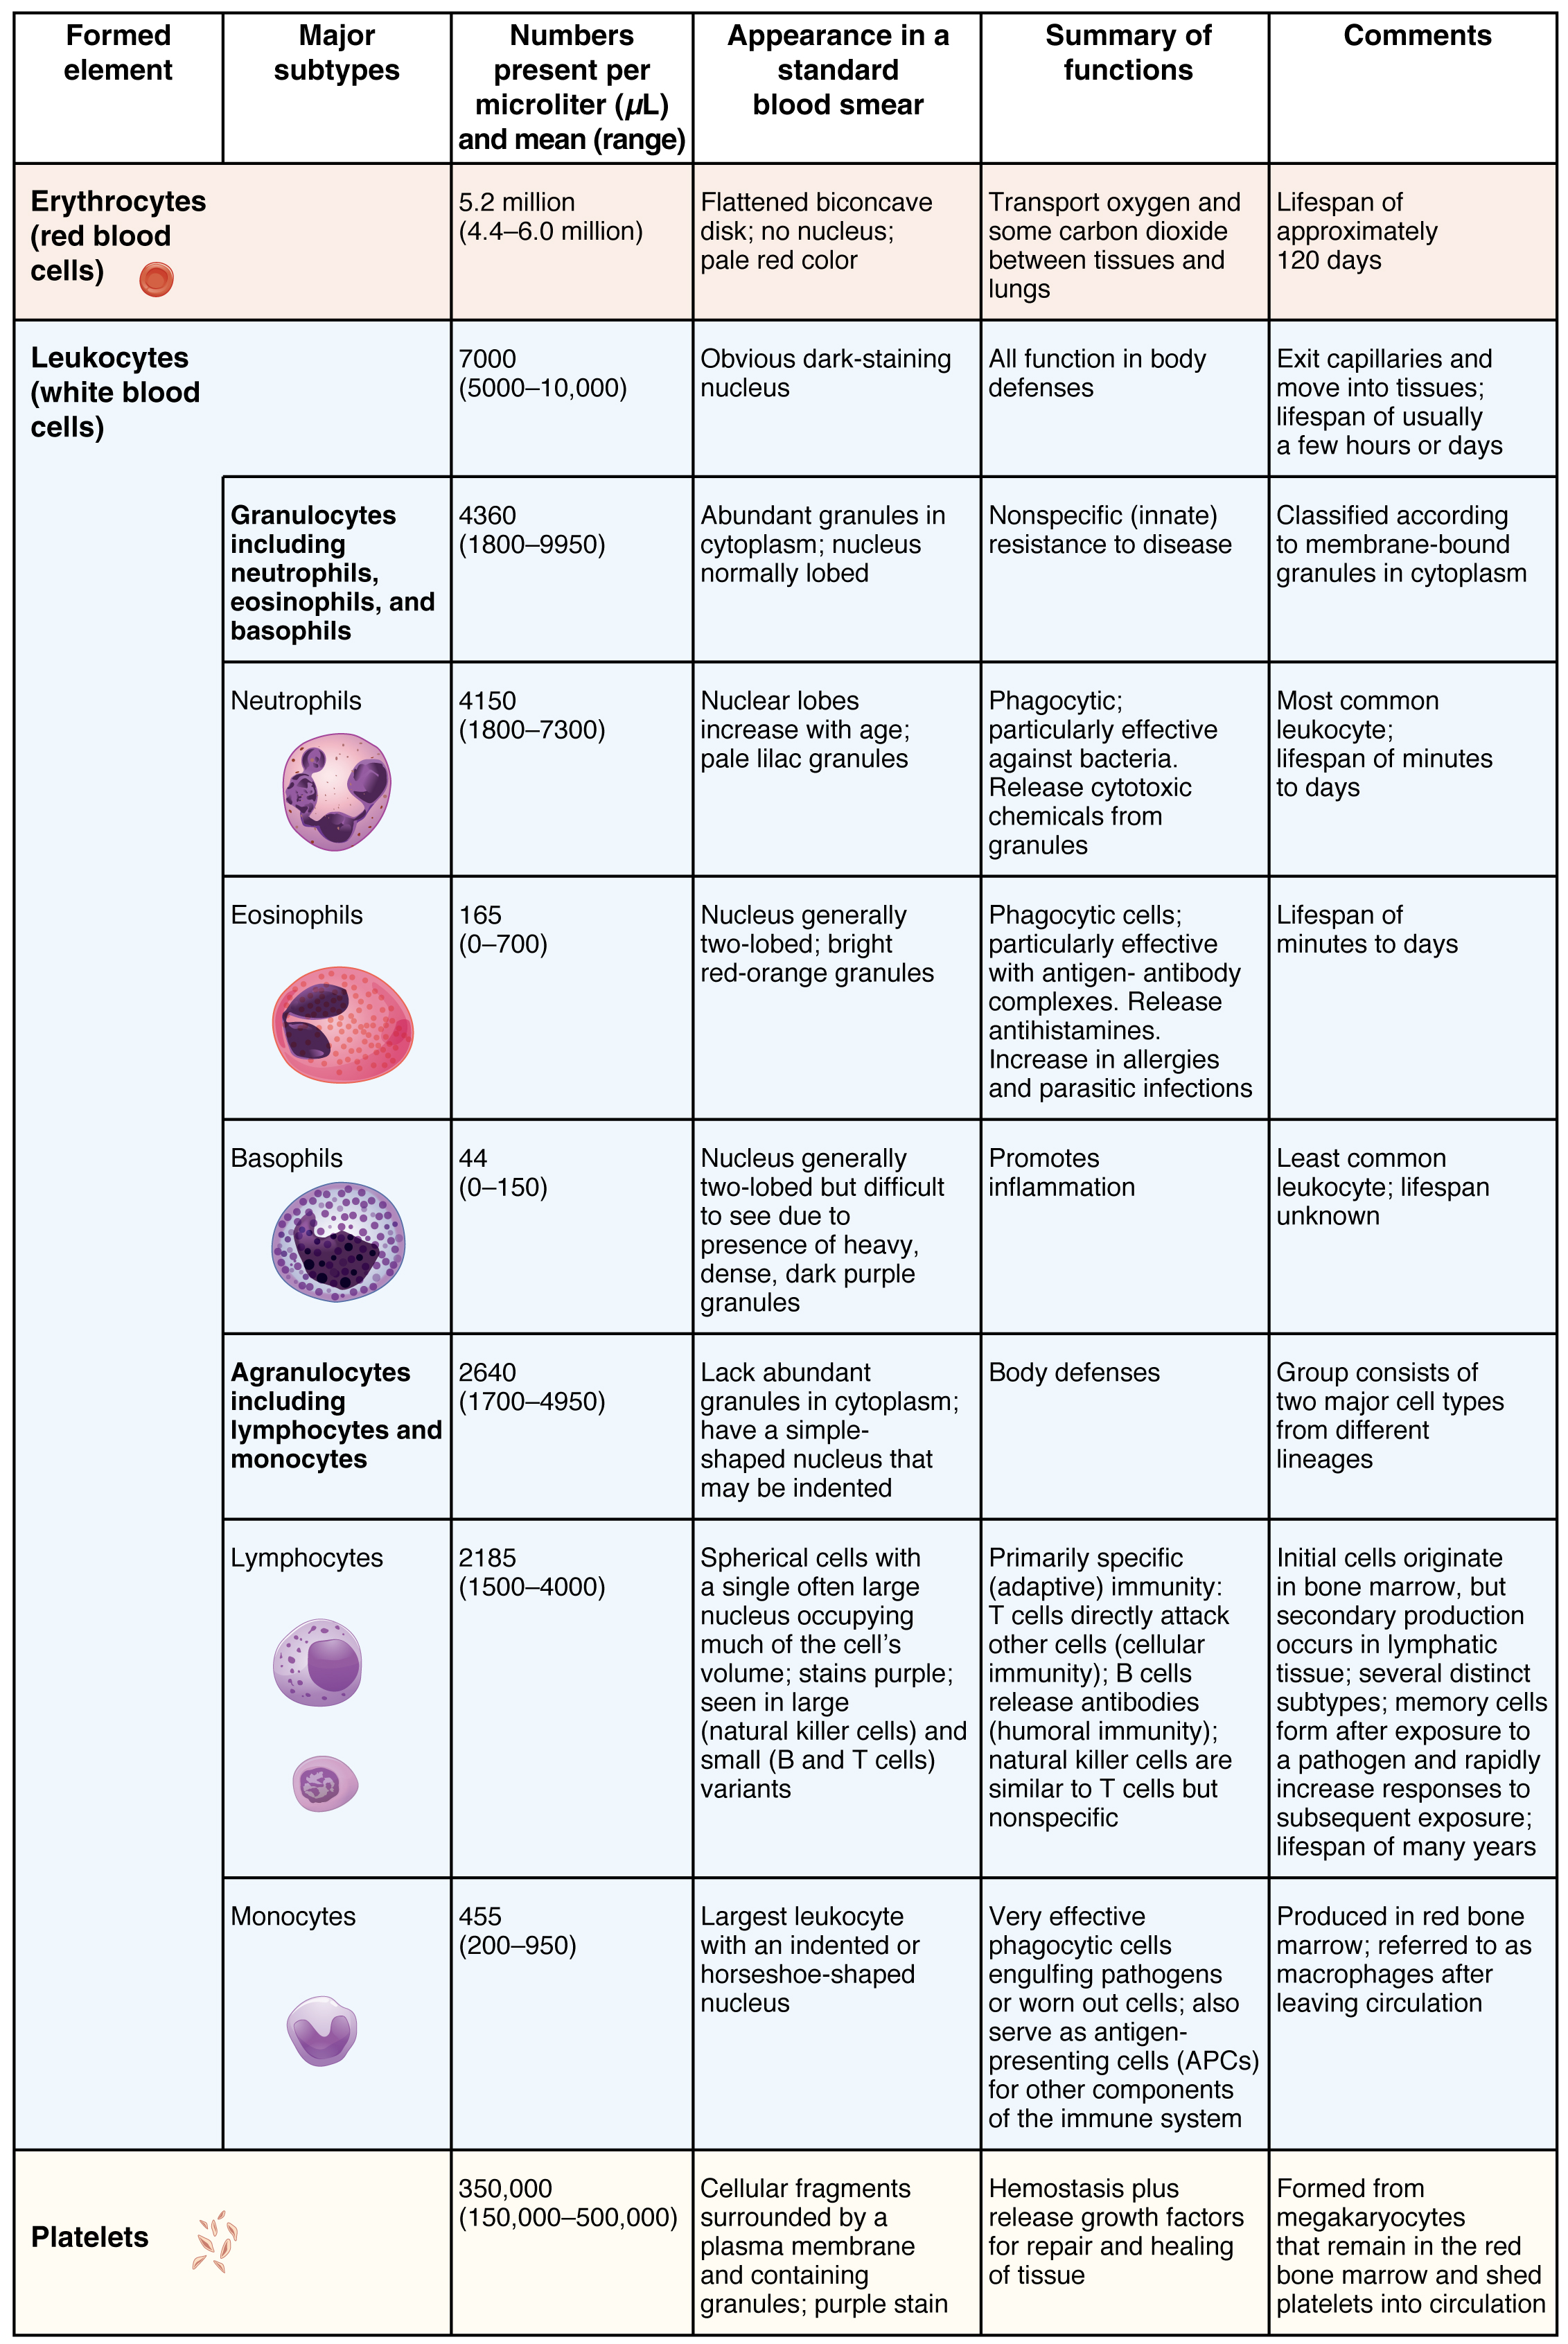 This table shows the different types of cells present in blood, the number of cells, their appearance, and a summary of their function.